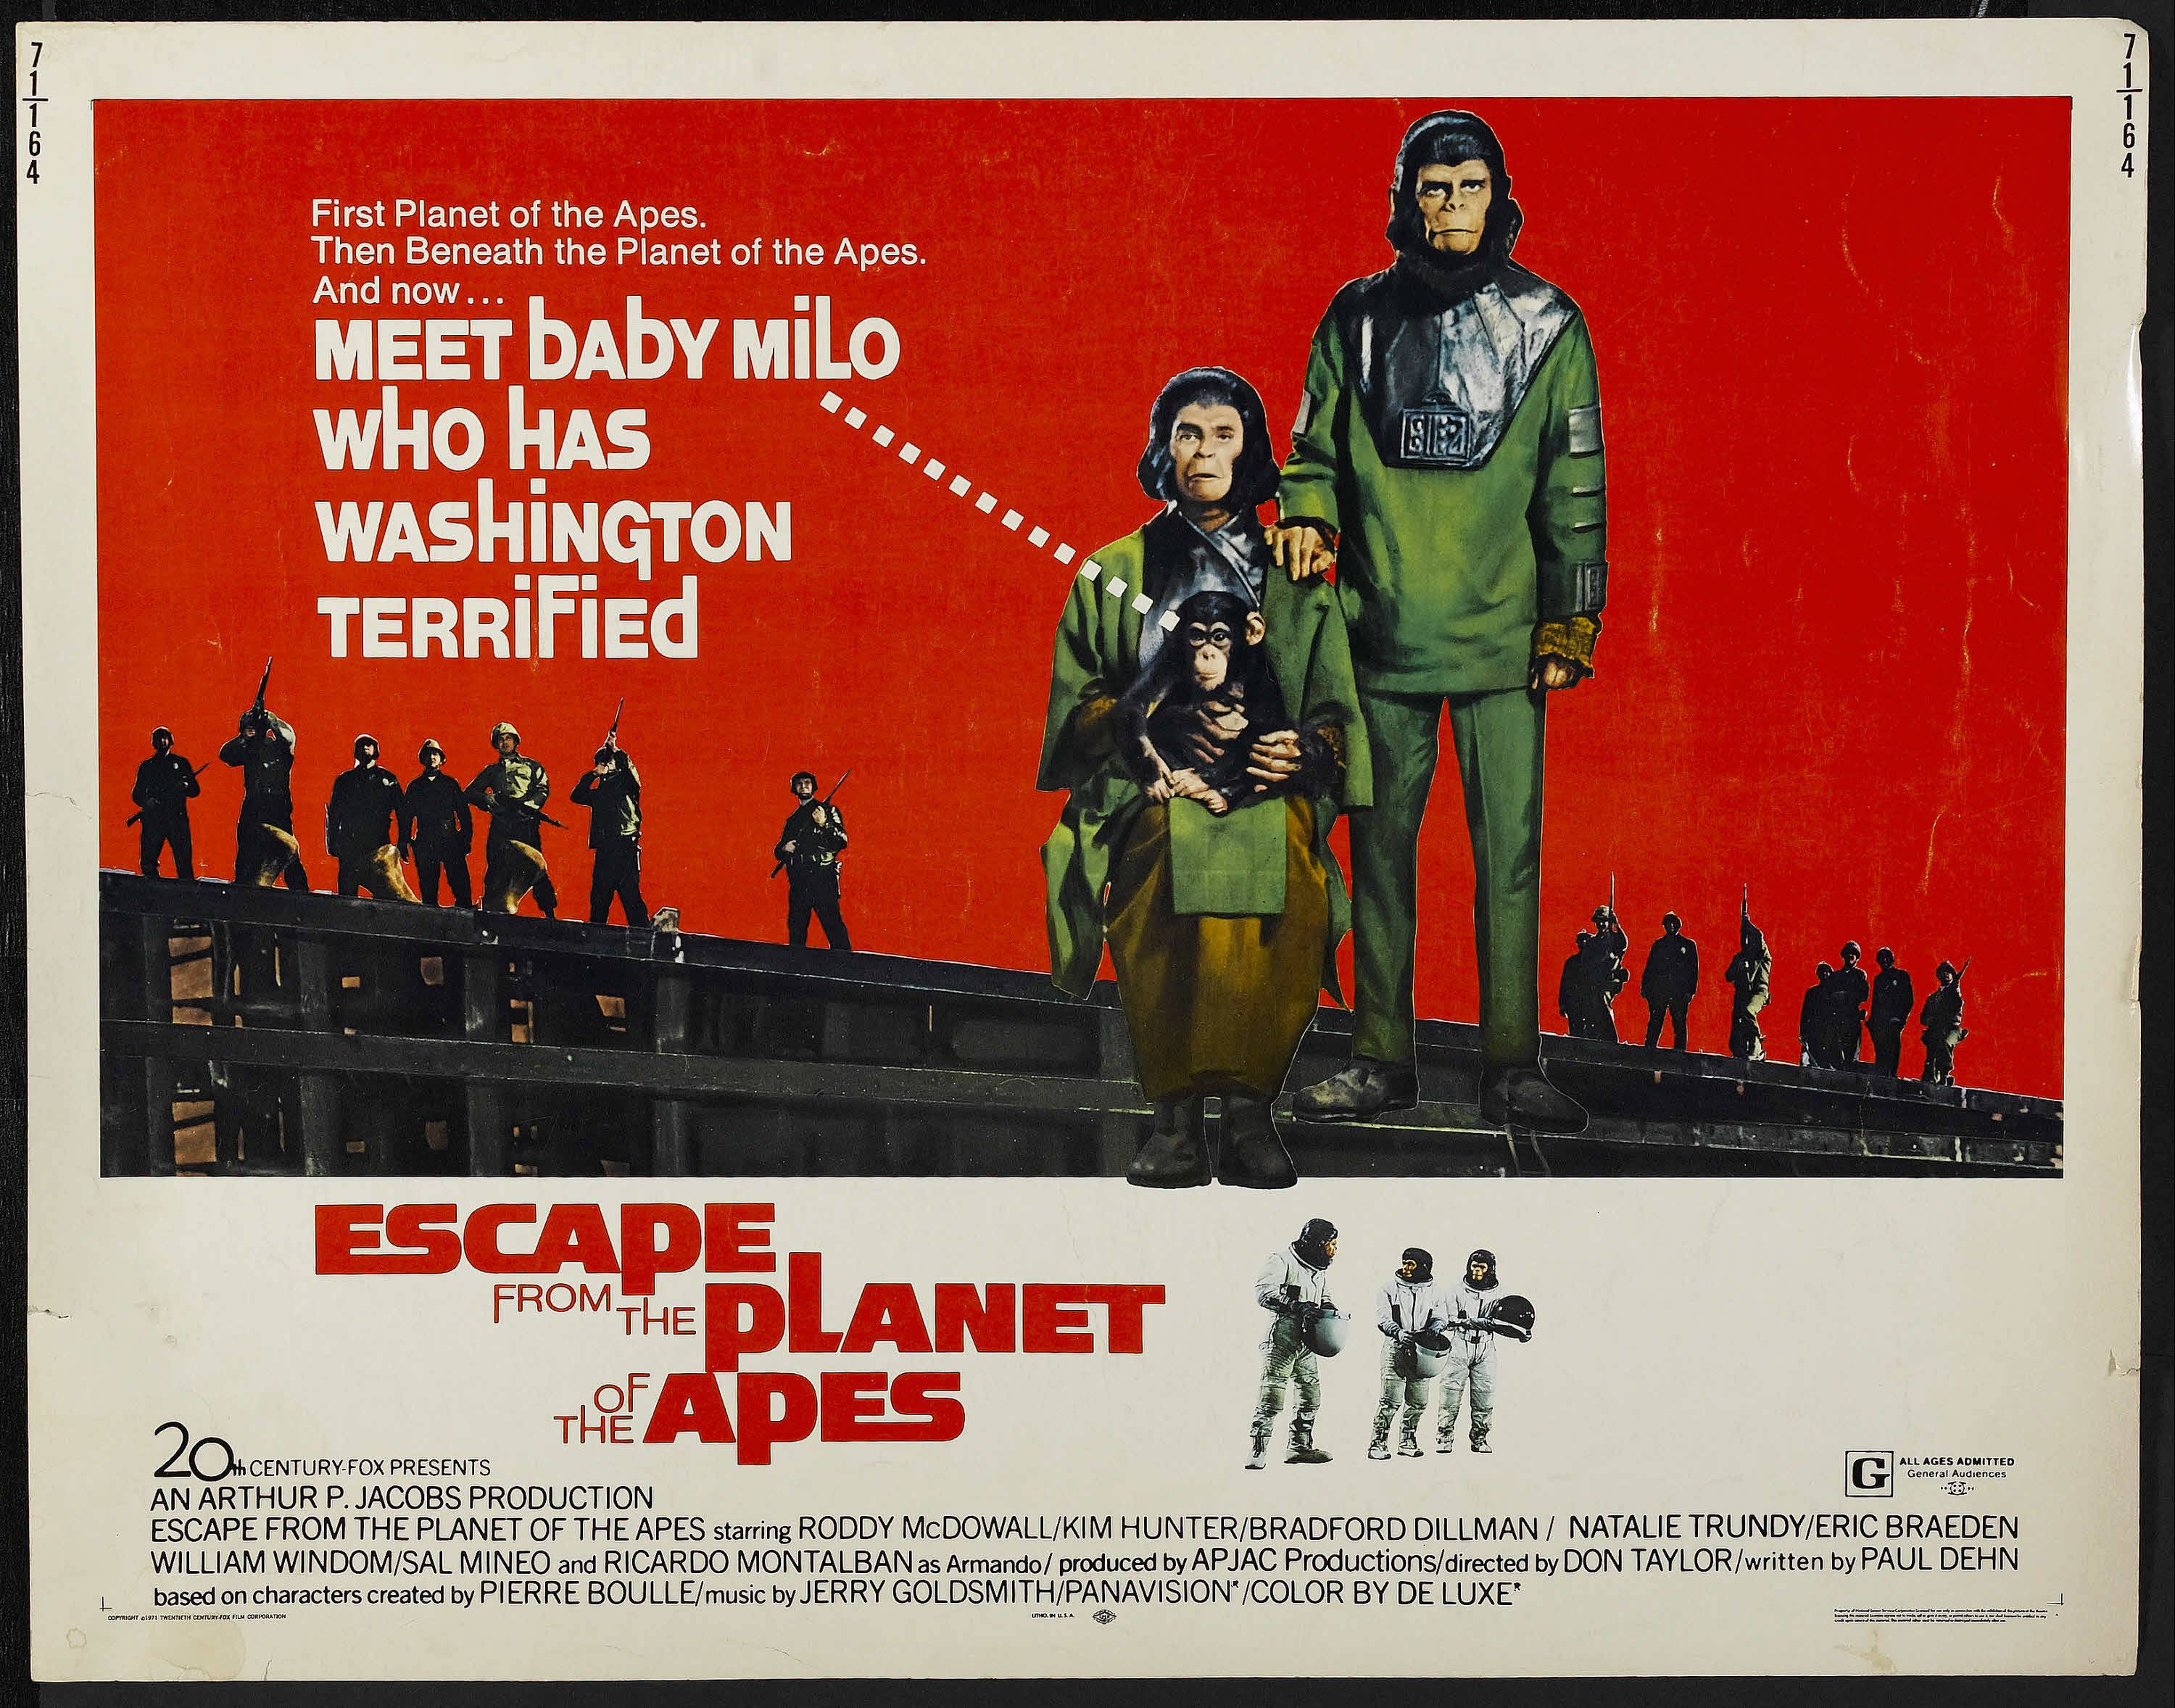 Escape From the Planet of the Apes continued the Planet of the Apes franchise by sending characters back in time. What's your favorite Planet of the Apes franchise entry?